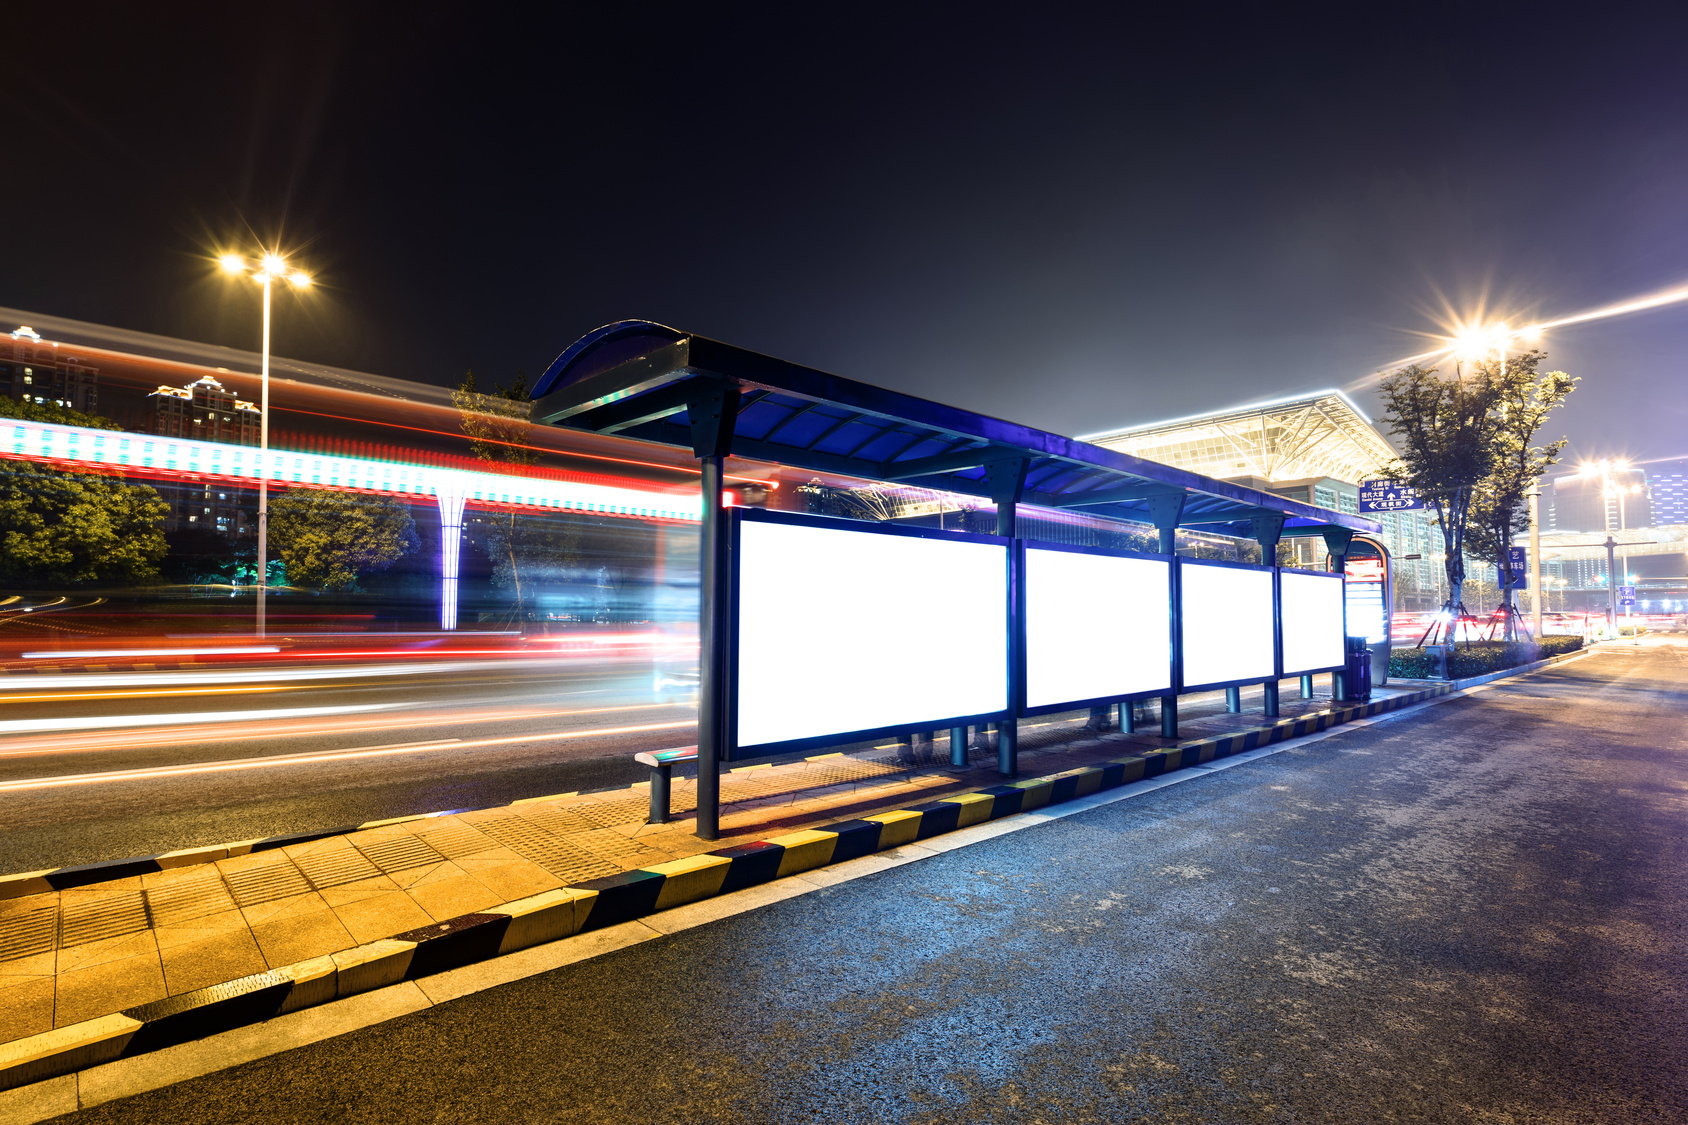 Train passing outdoor stop at night | Railroad accident lawyers NYC